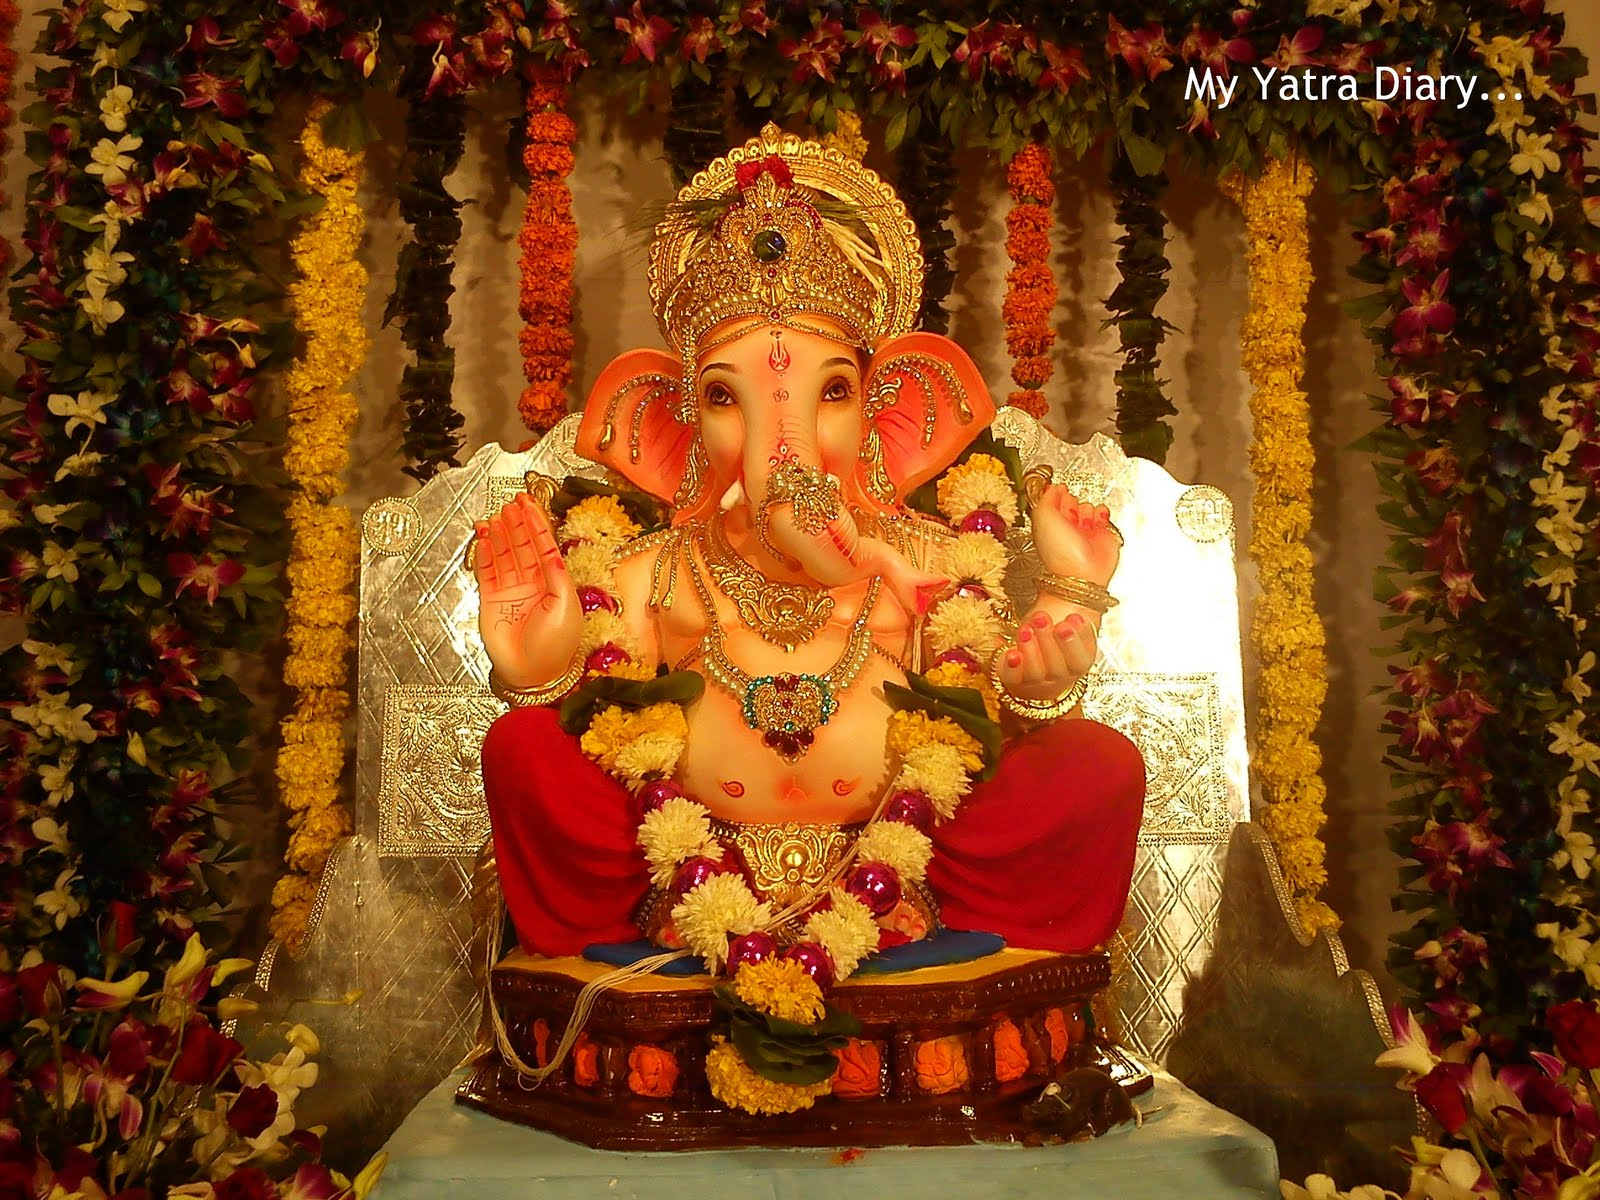 Ganesh chaturthi flowers may flower blog - Ganpati Pandal With Flowers And Garlands Decoration